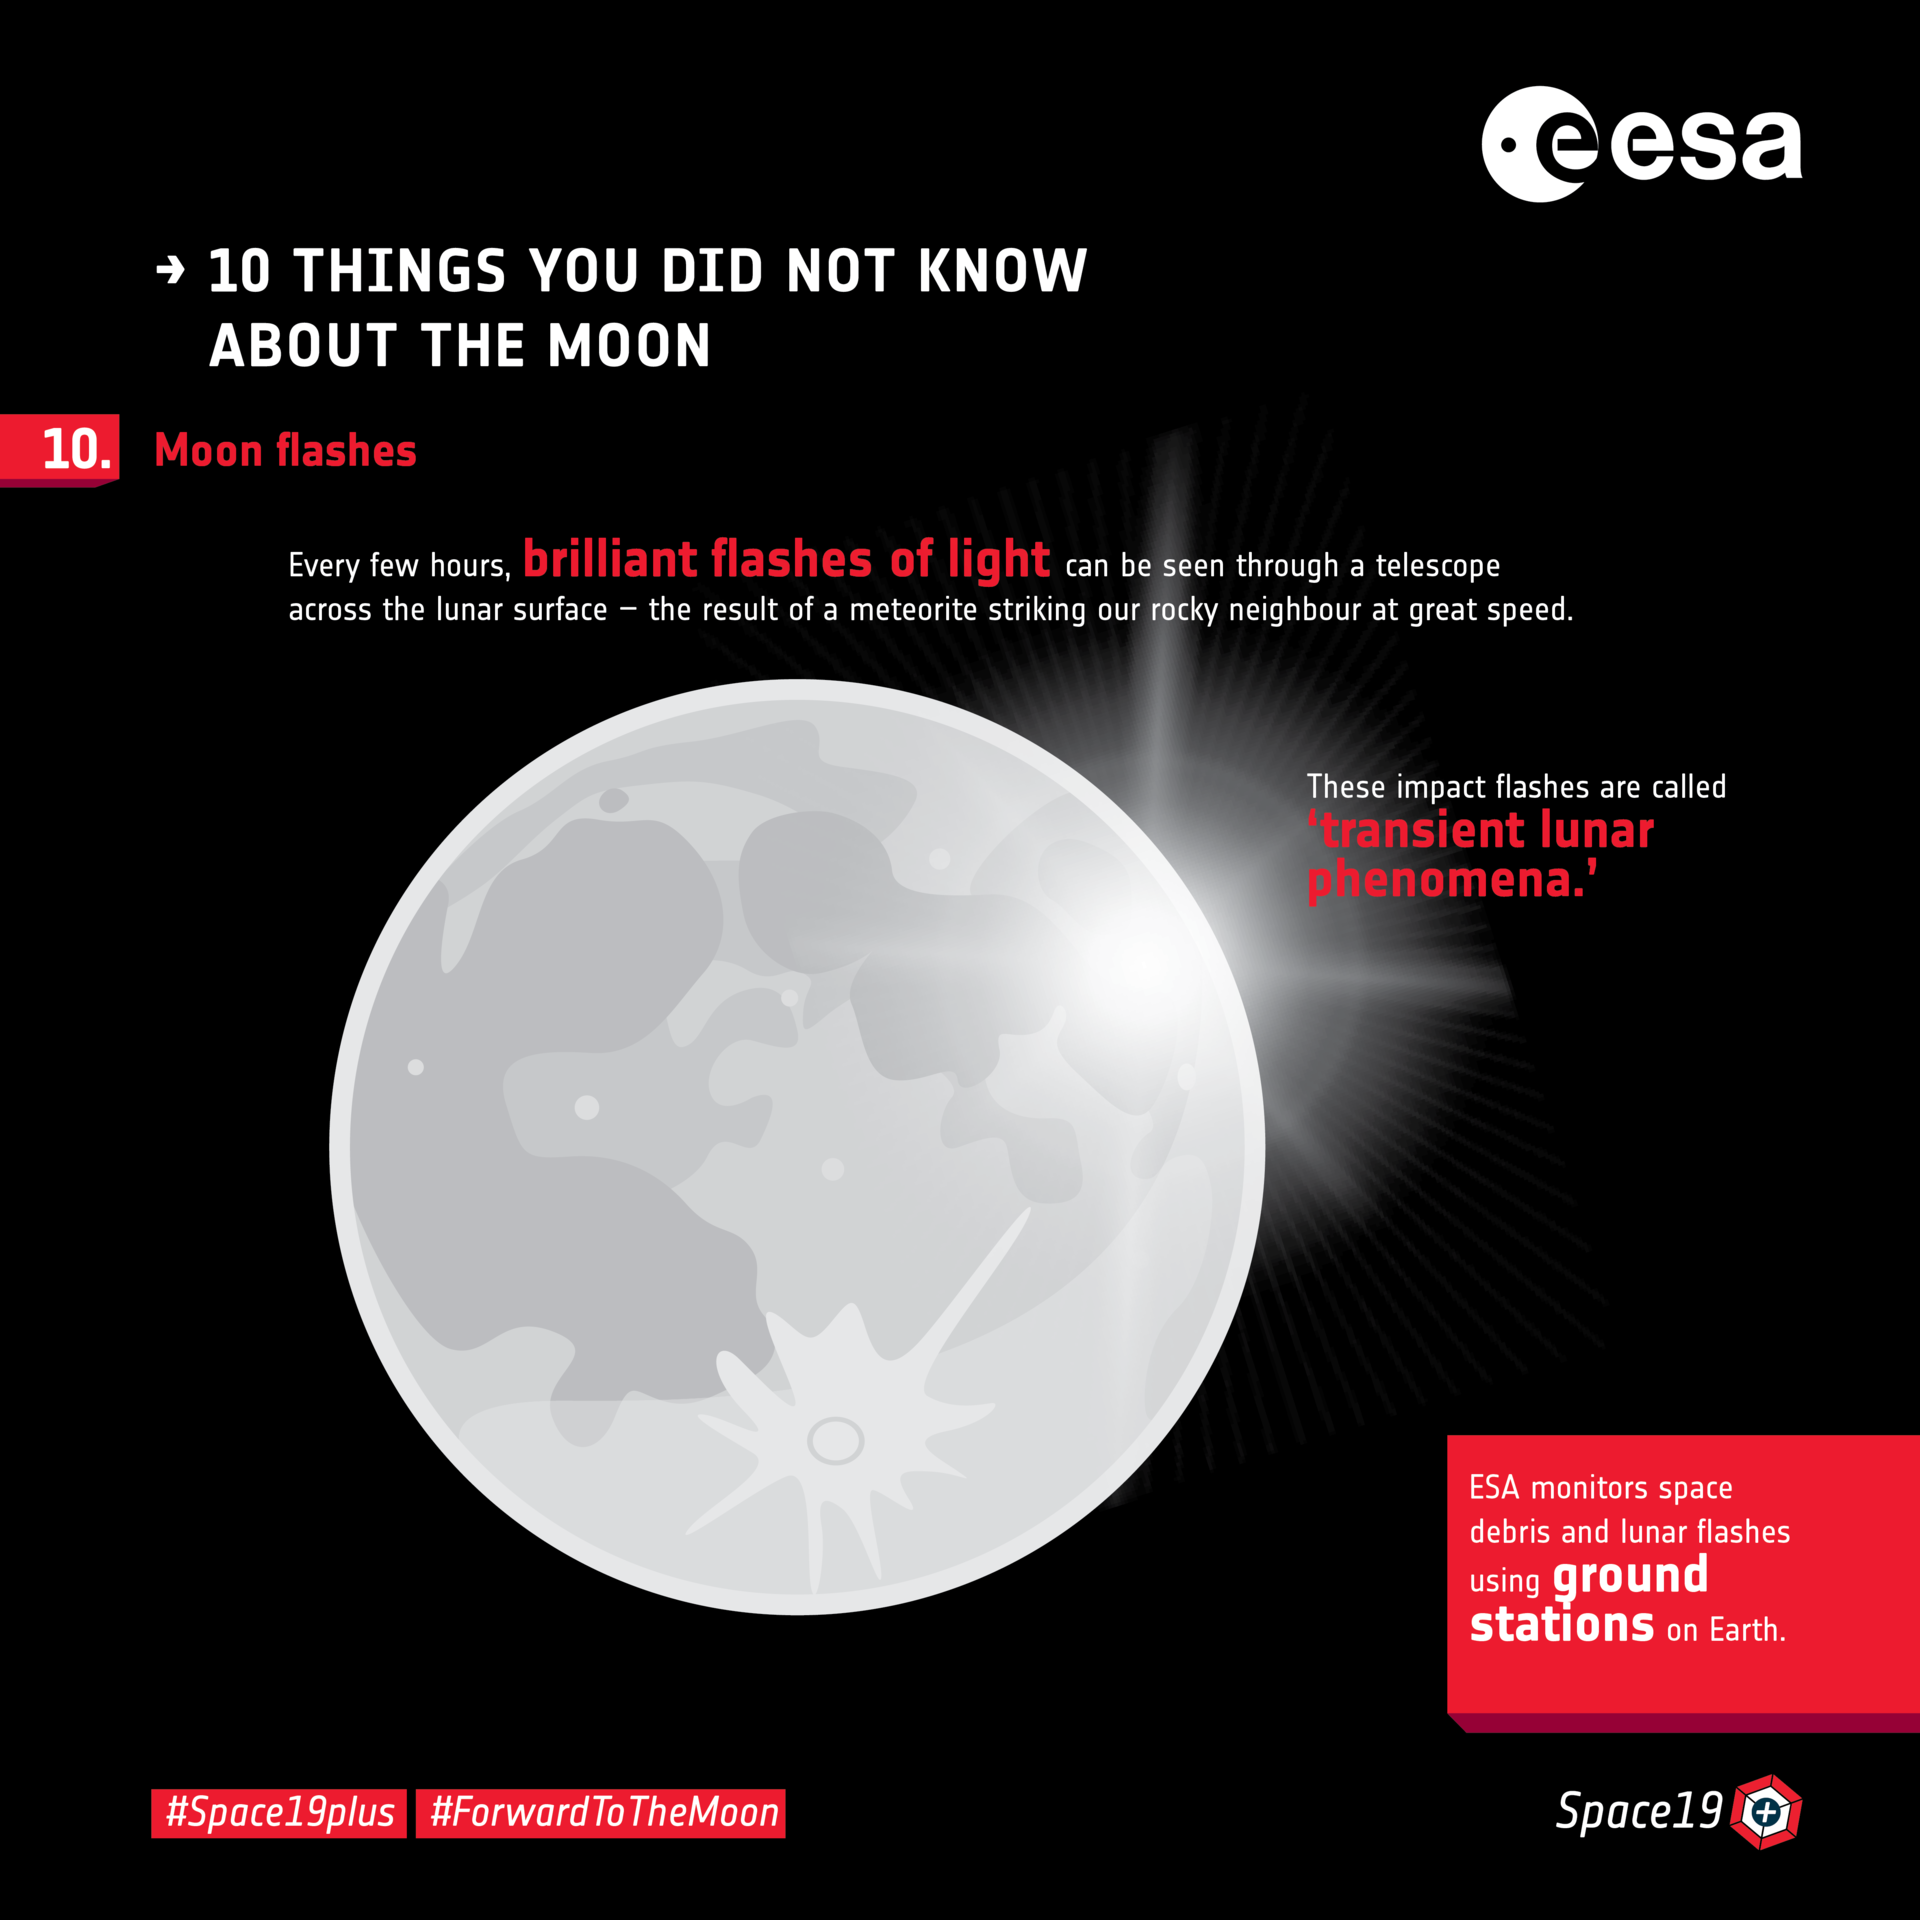 Ten things you did not know about the Moon: 10. Flashes